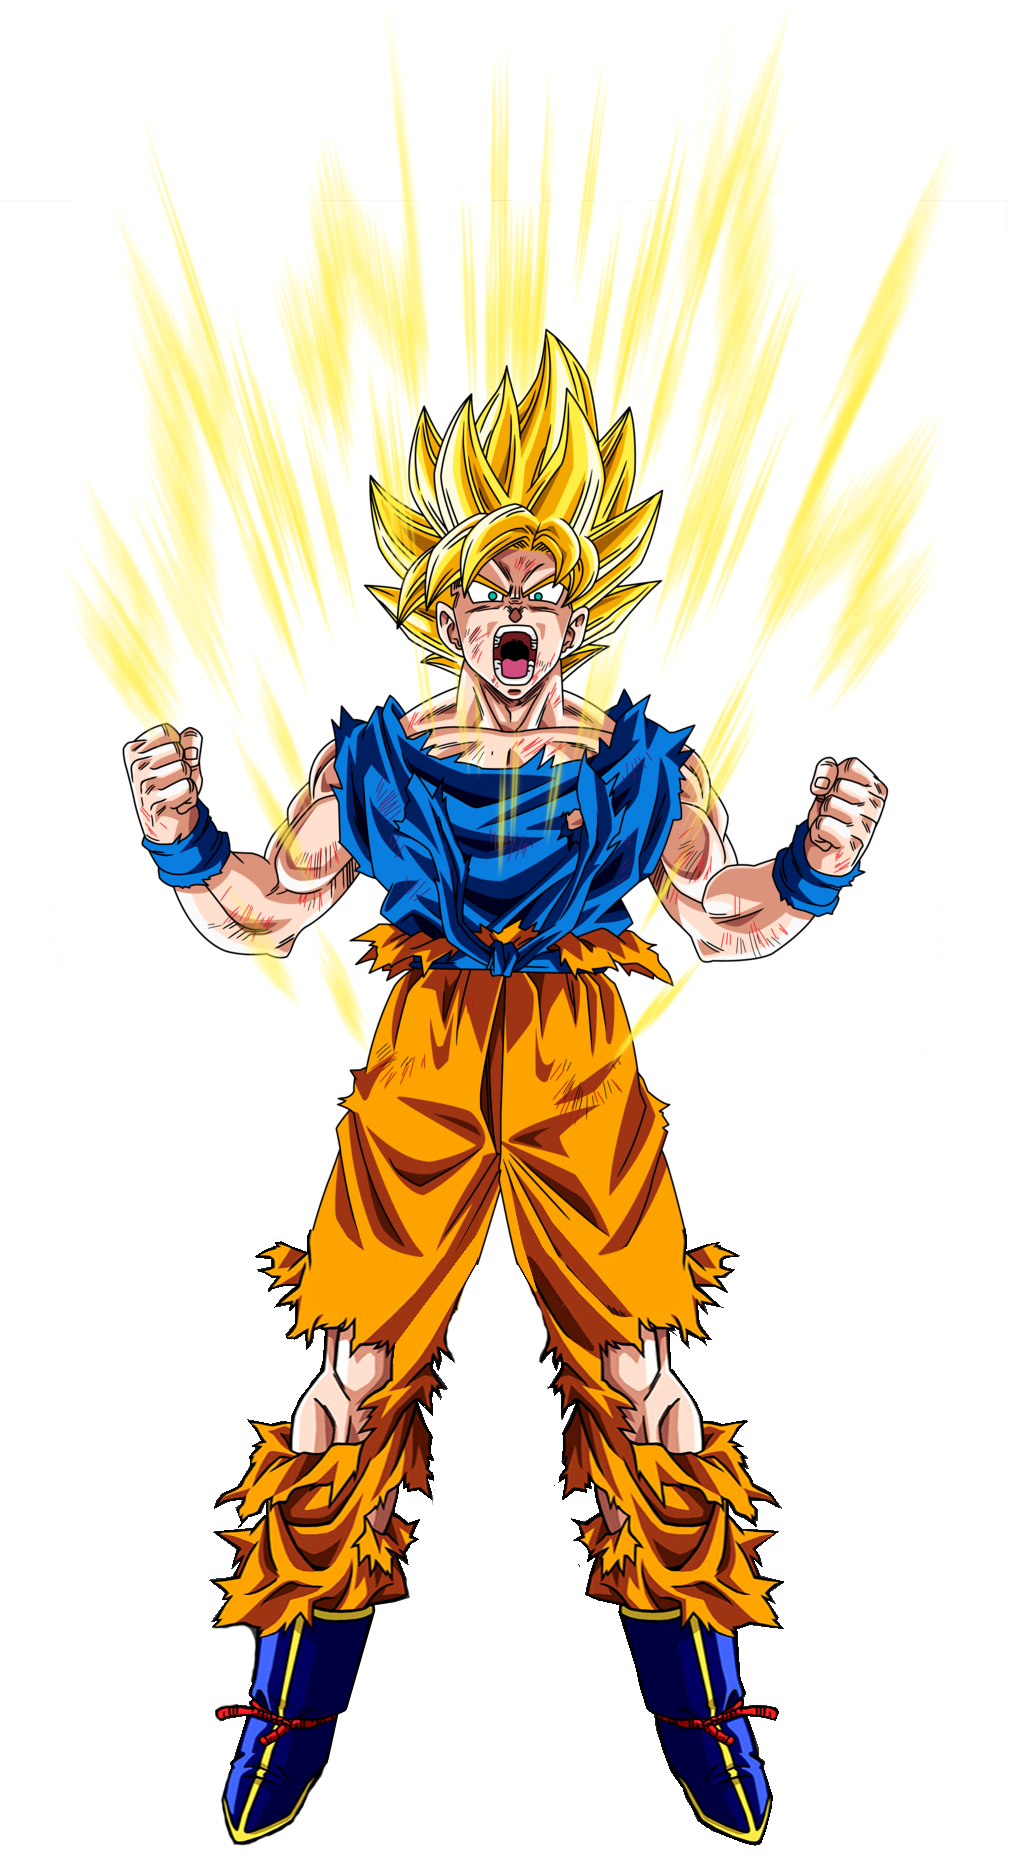 Super saiyan dragonball wiki fandom powered by wikia - Super sayenne ...